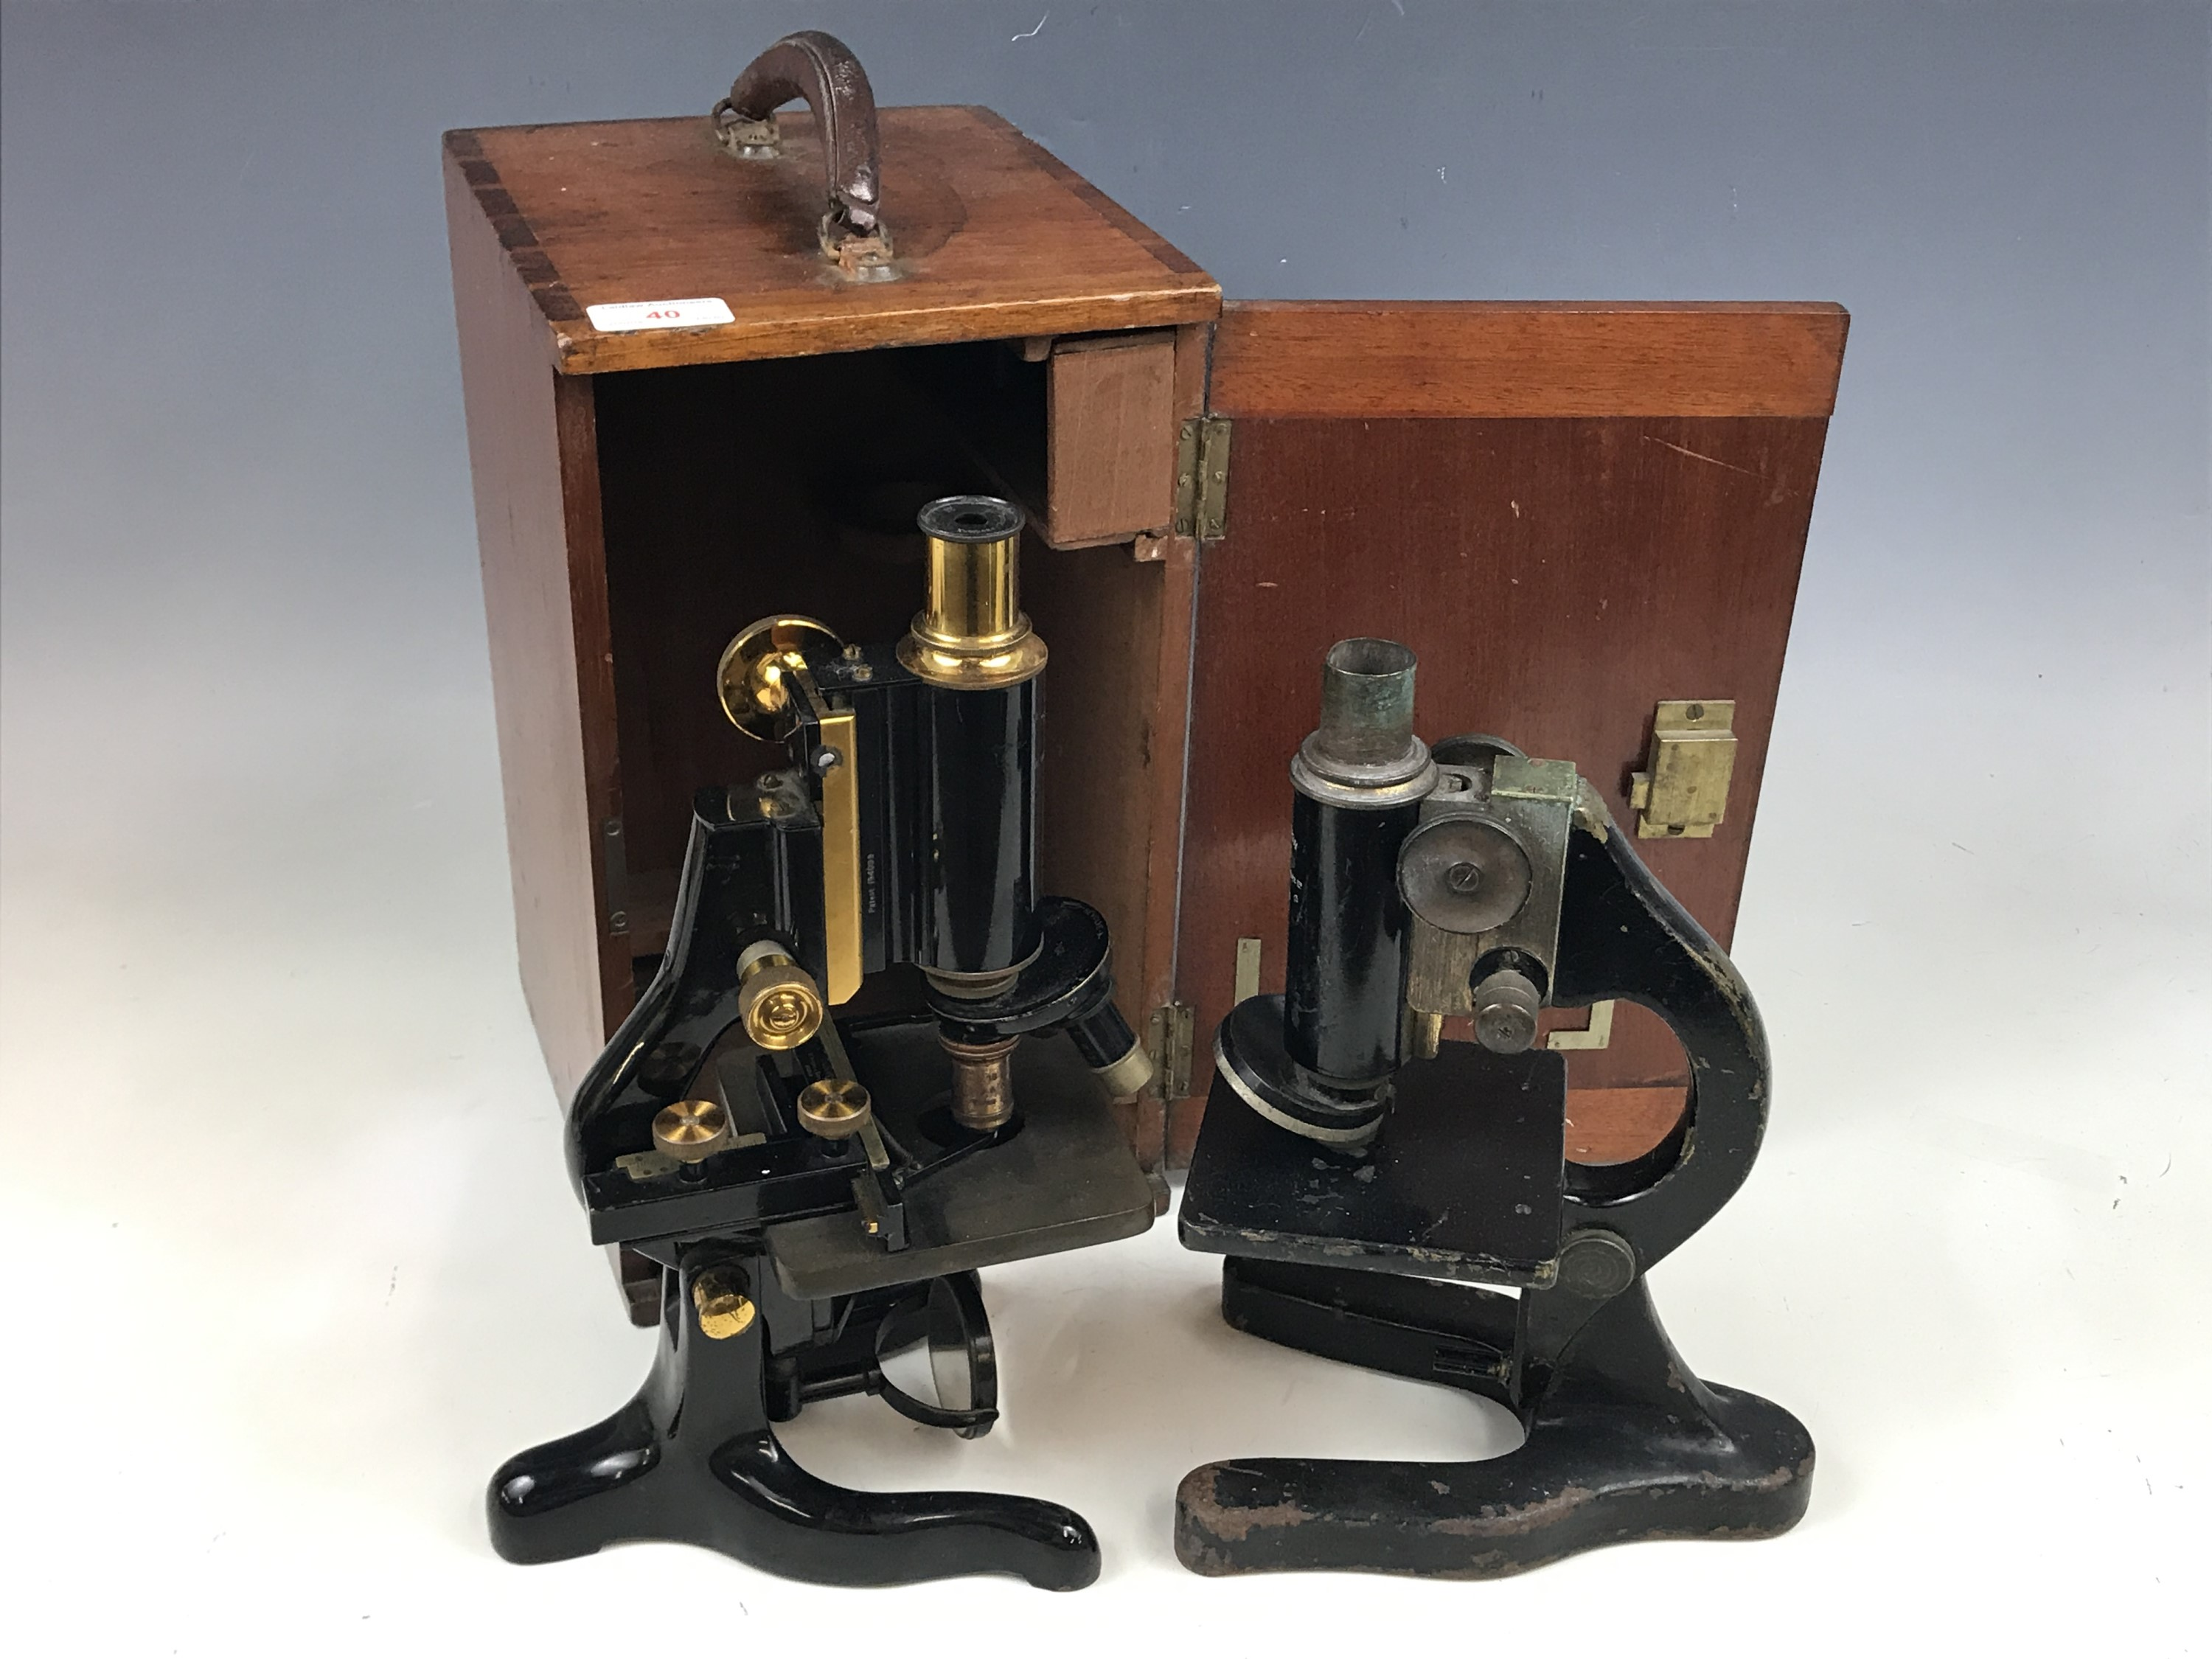 Lot 40 - A 1920s Watts' Service microscope, cased, together with one other (a/f) microscope